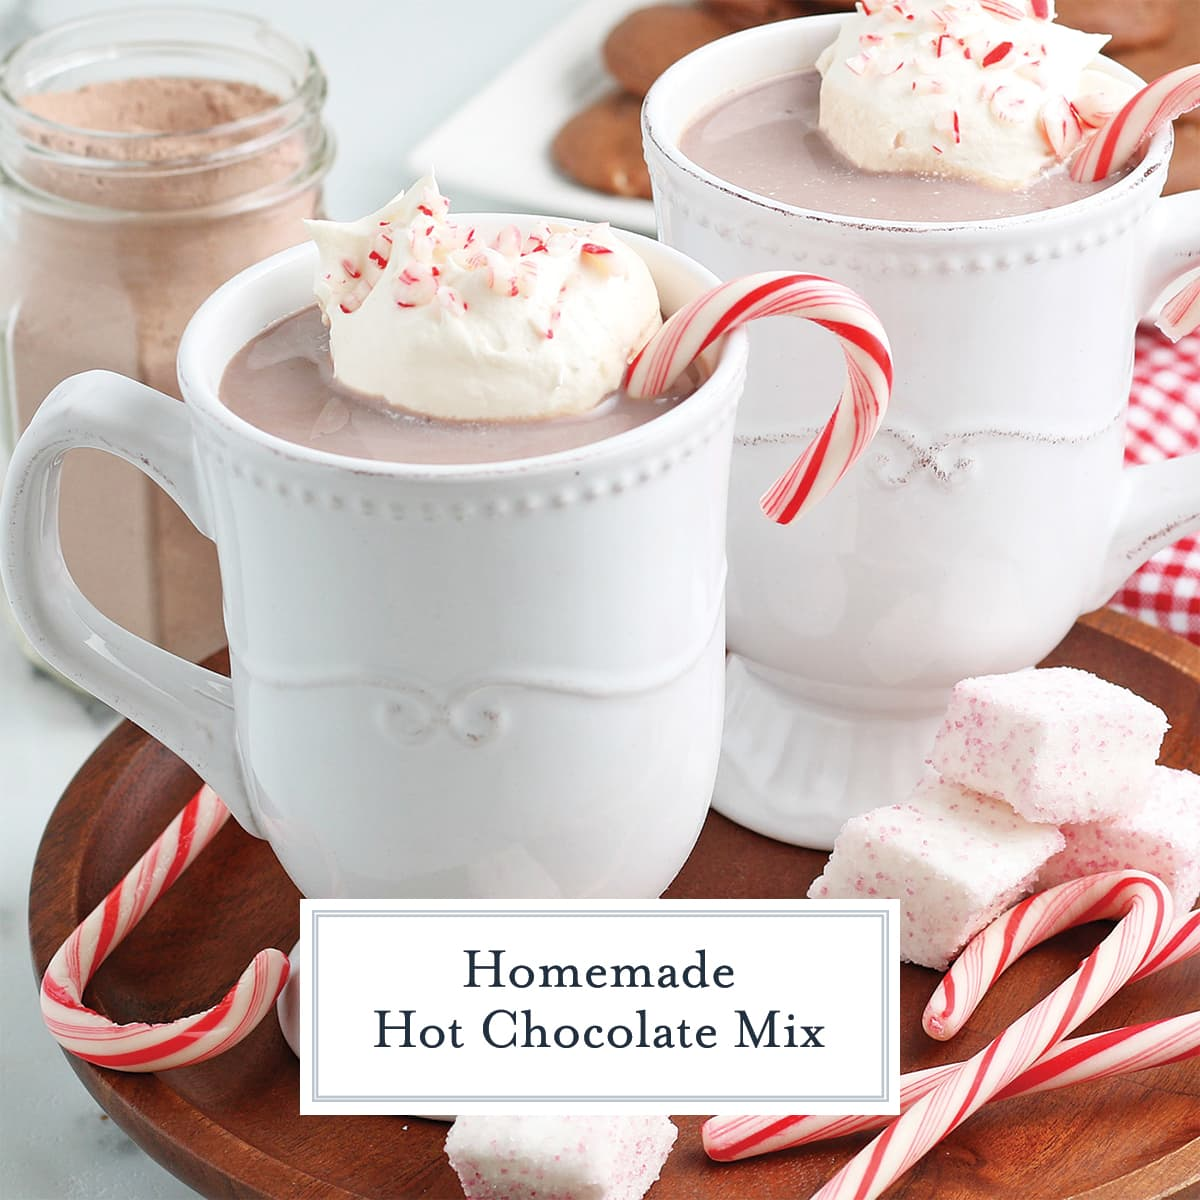 side view of homemade hot chocolate with whipped cream and peppermint